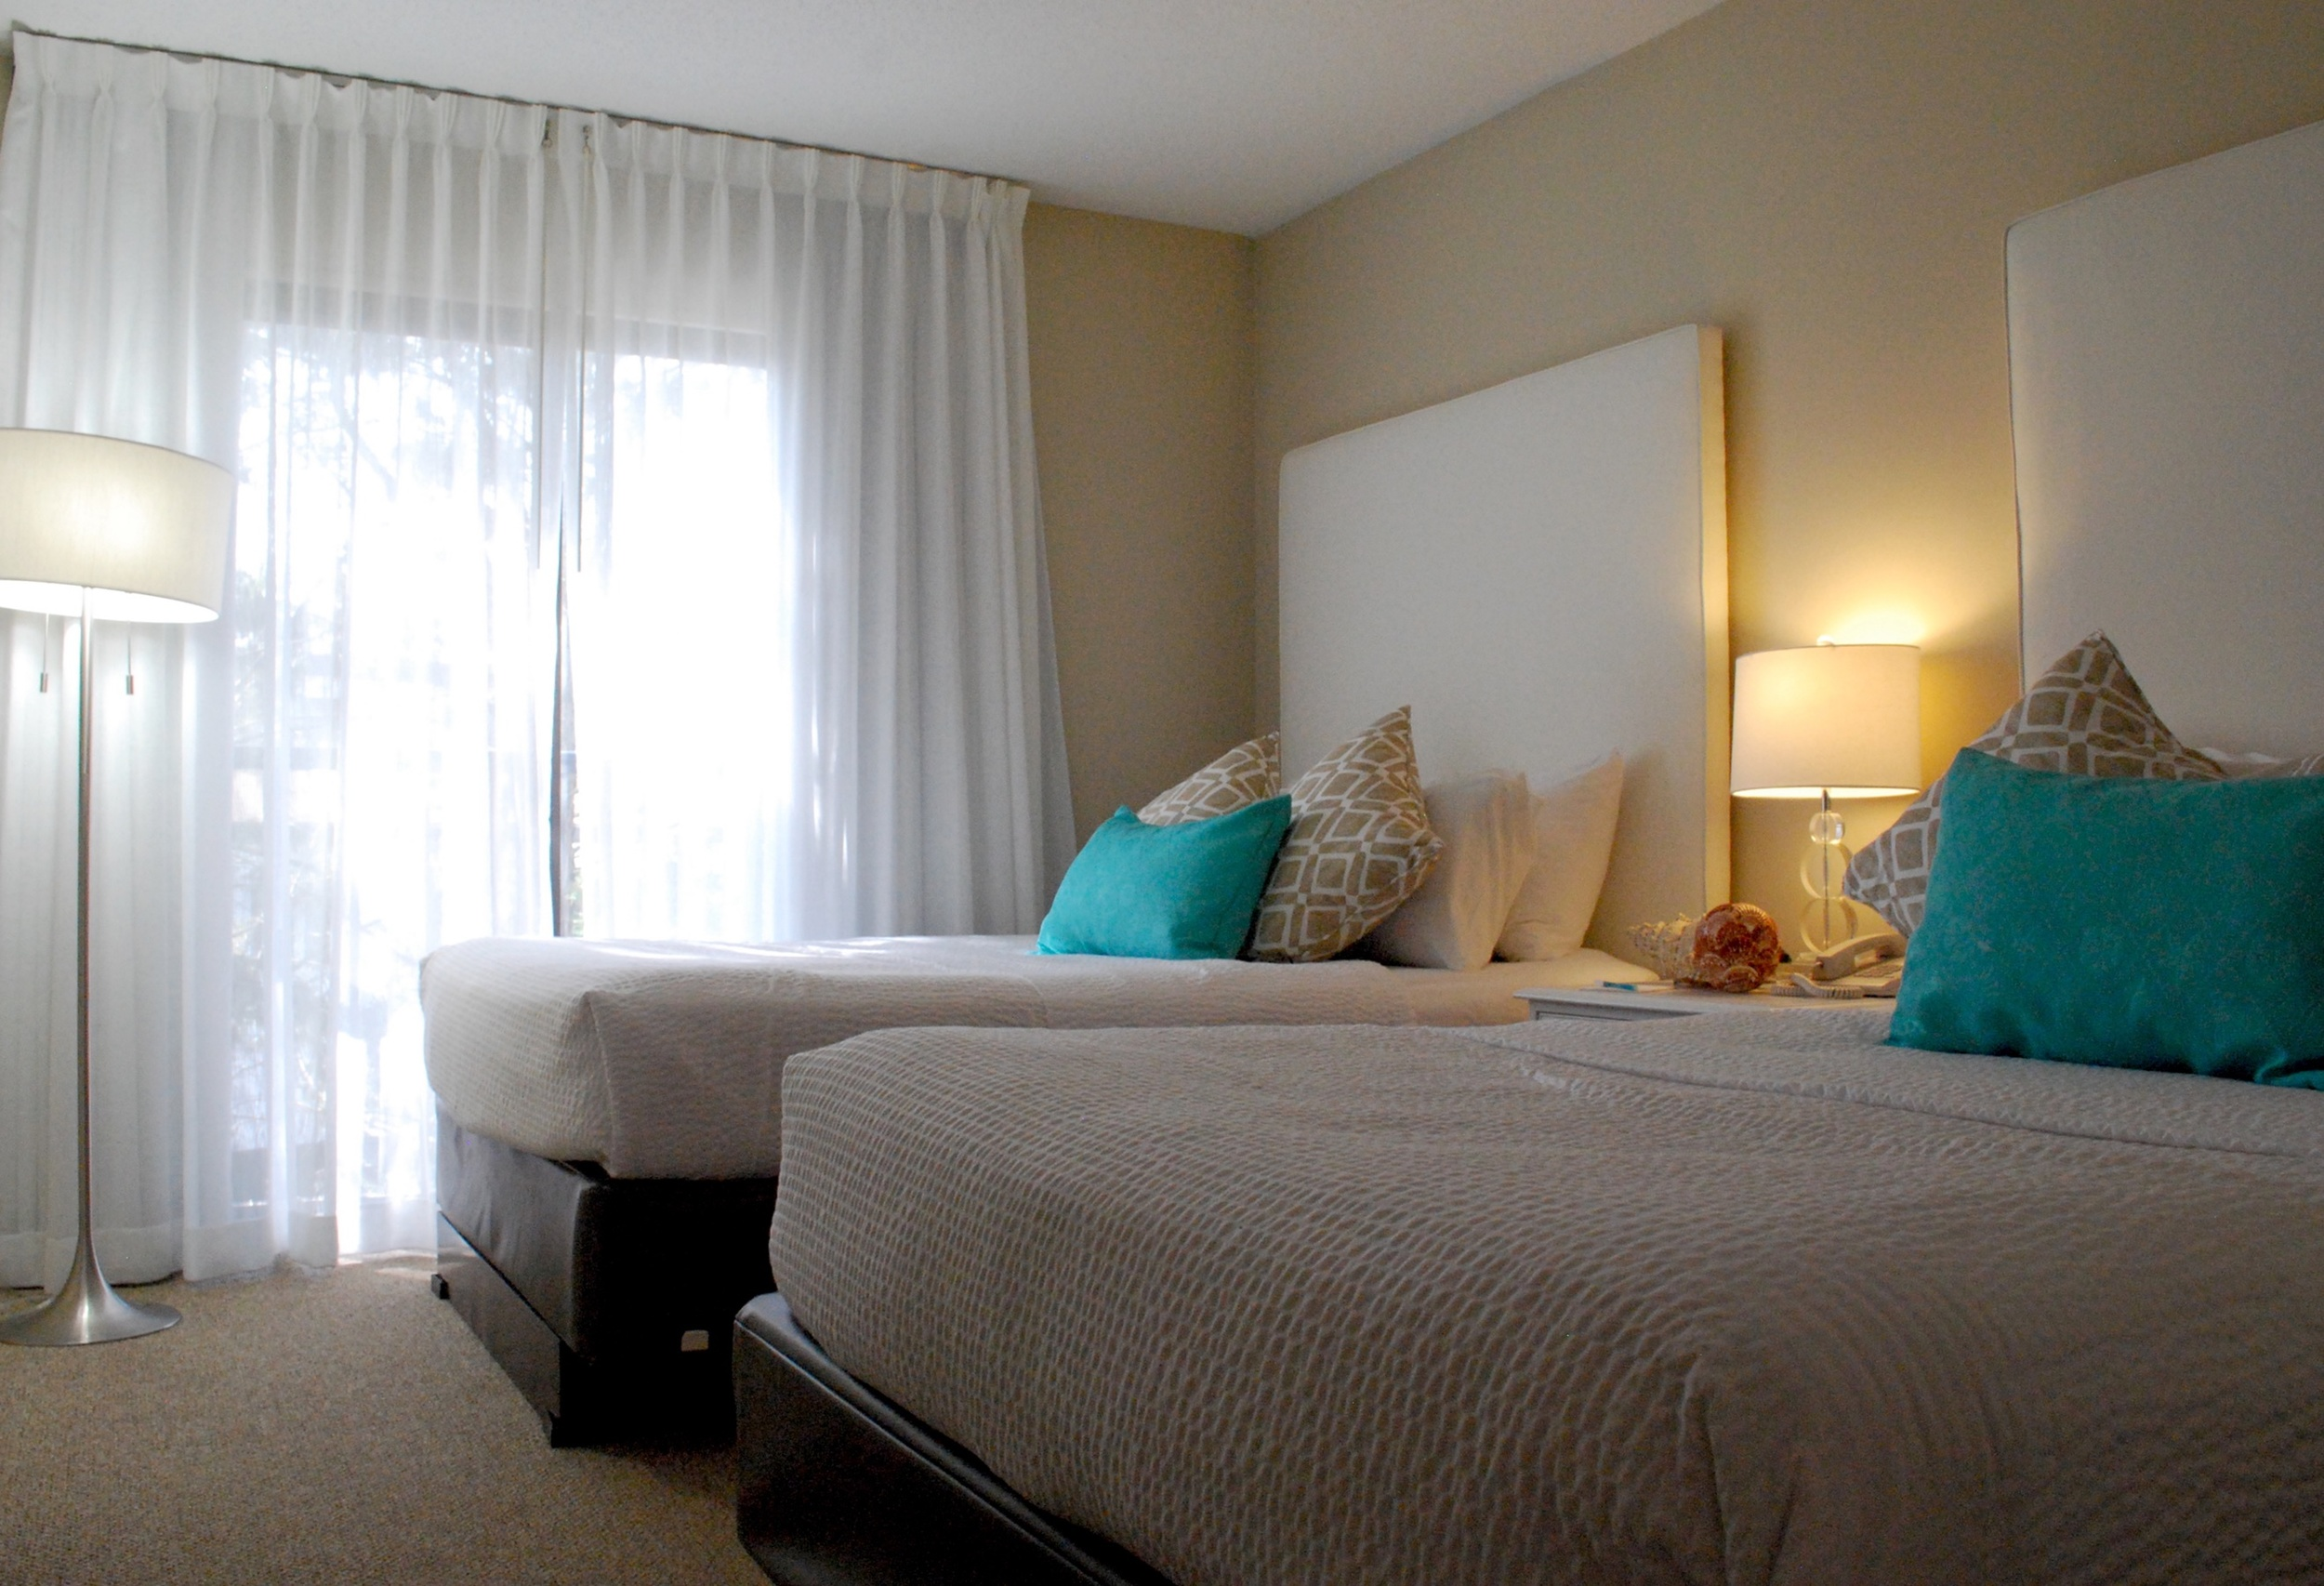 Double Suite: Two double beds, two televisions, DVD players, sleeper sofa, & wet-bar sink area.